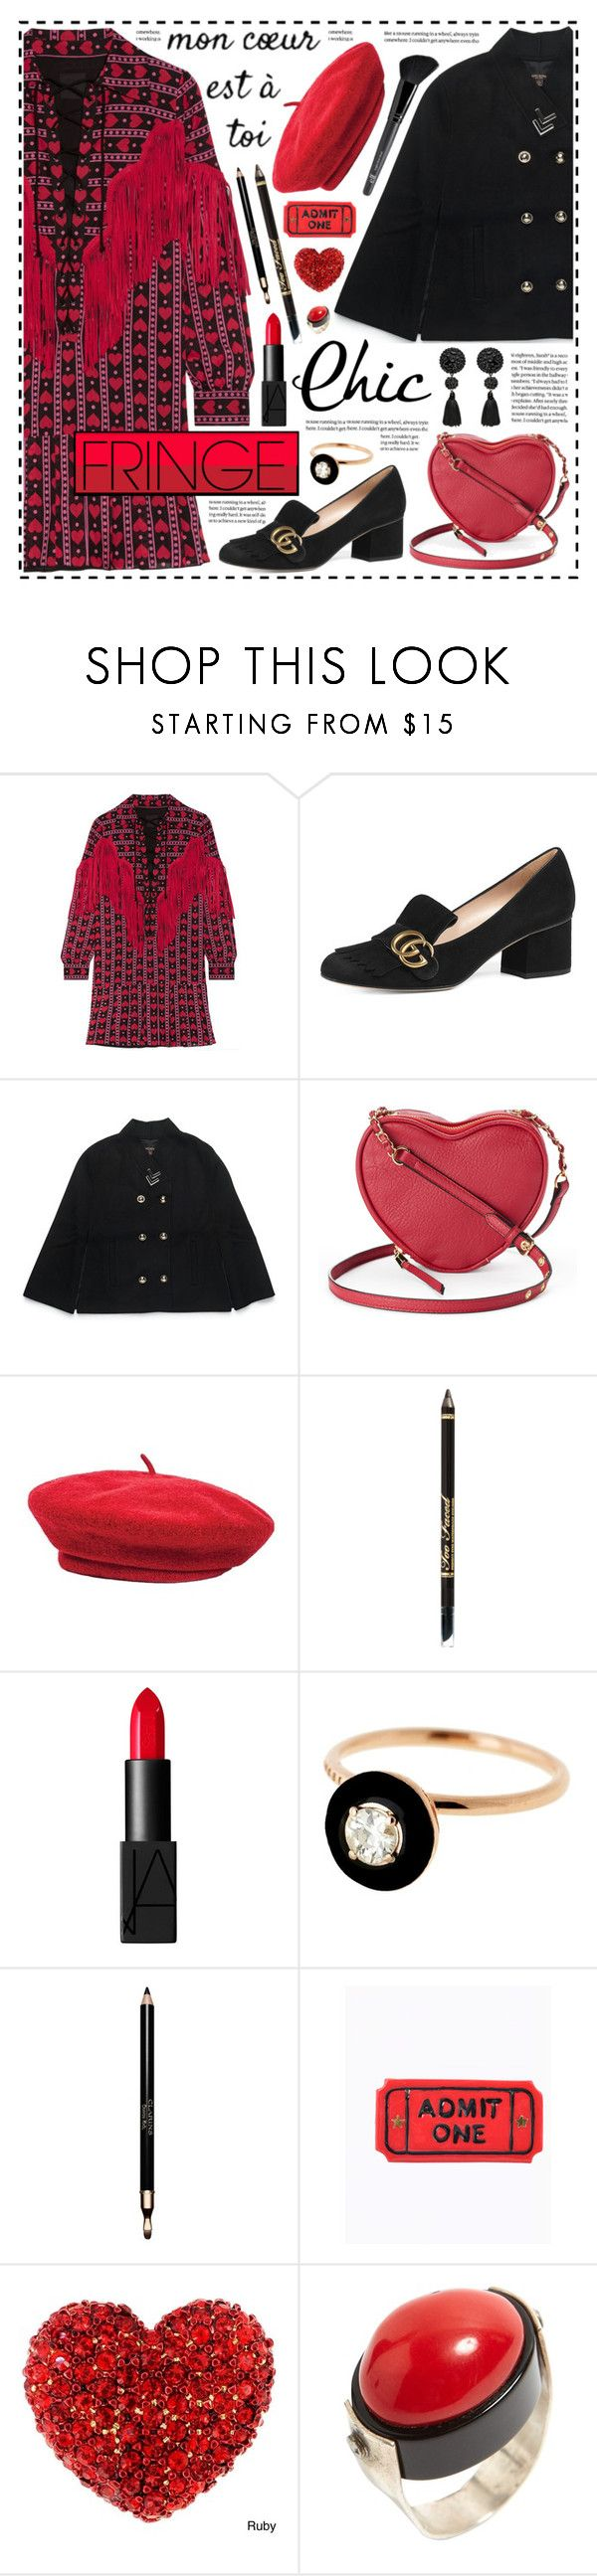 """""""Parisian Chic!"""" by hennie-henne ❤ liked on Polyvore featuring Anna Sui, Gucci, Henri Bendel, Juicy Couture, Brixton, NARS Cosmetics, Selim Mouzannar, Clarins and Old Navy"""